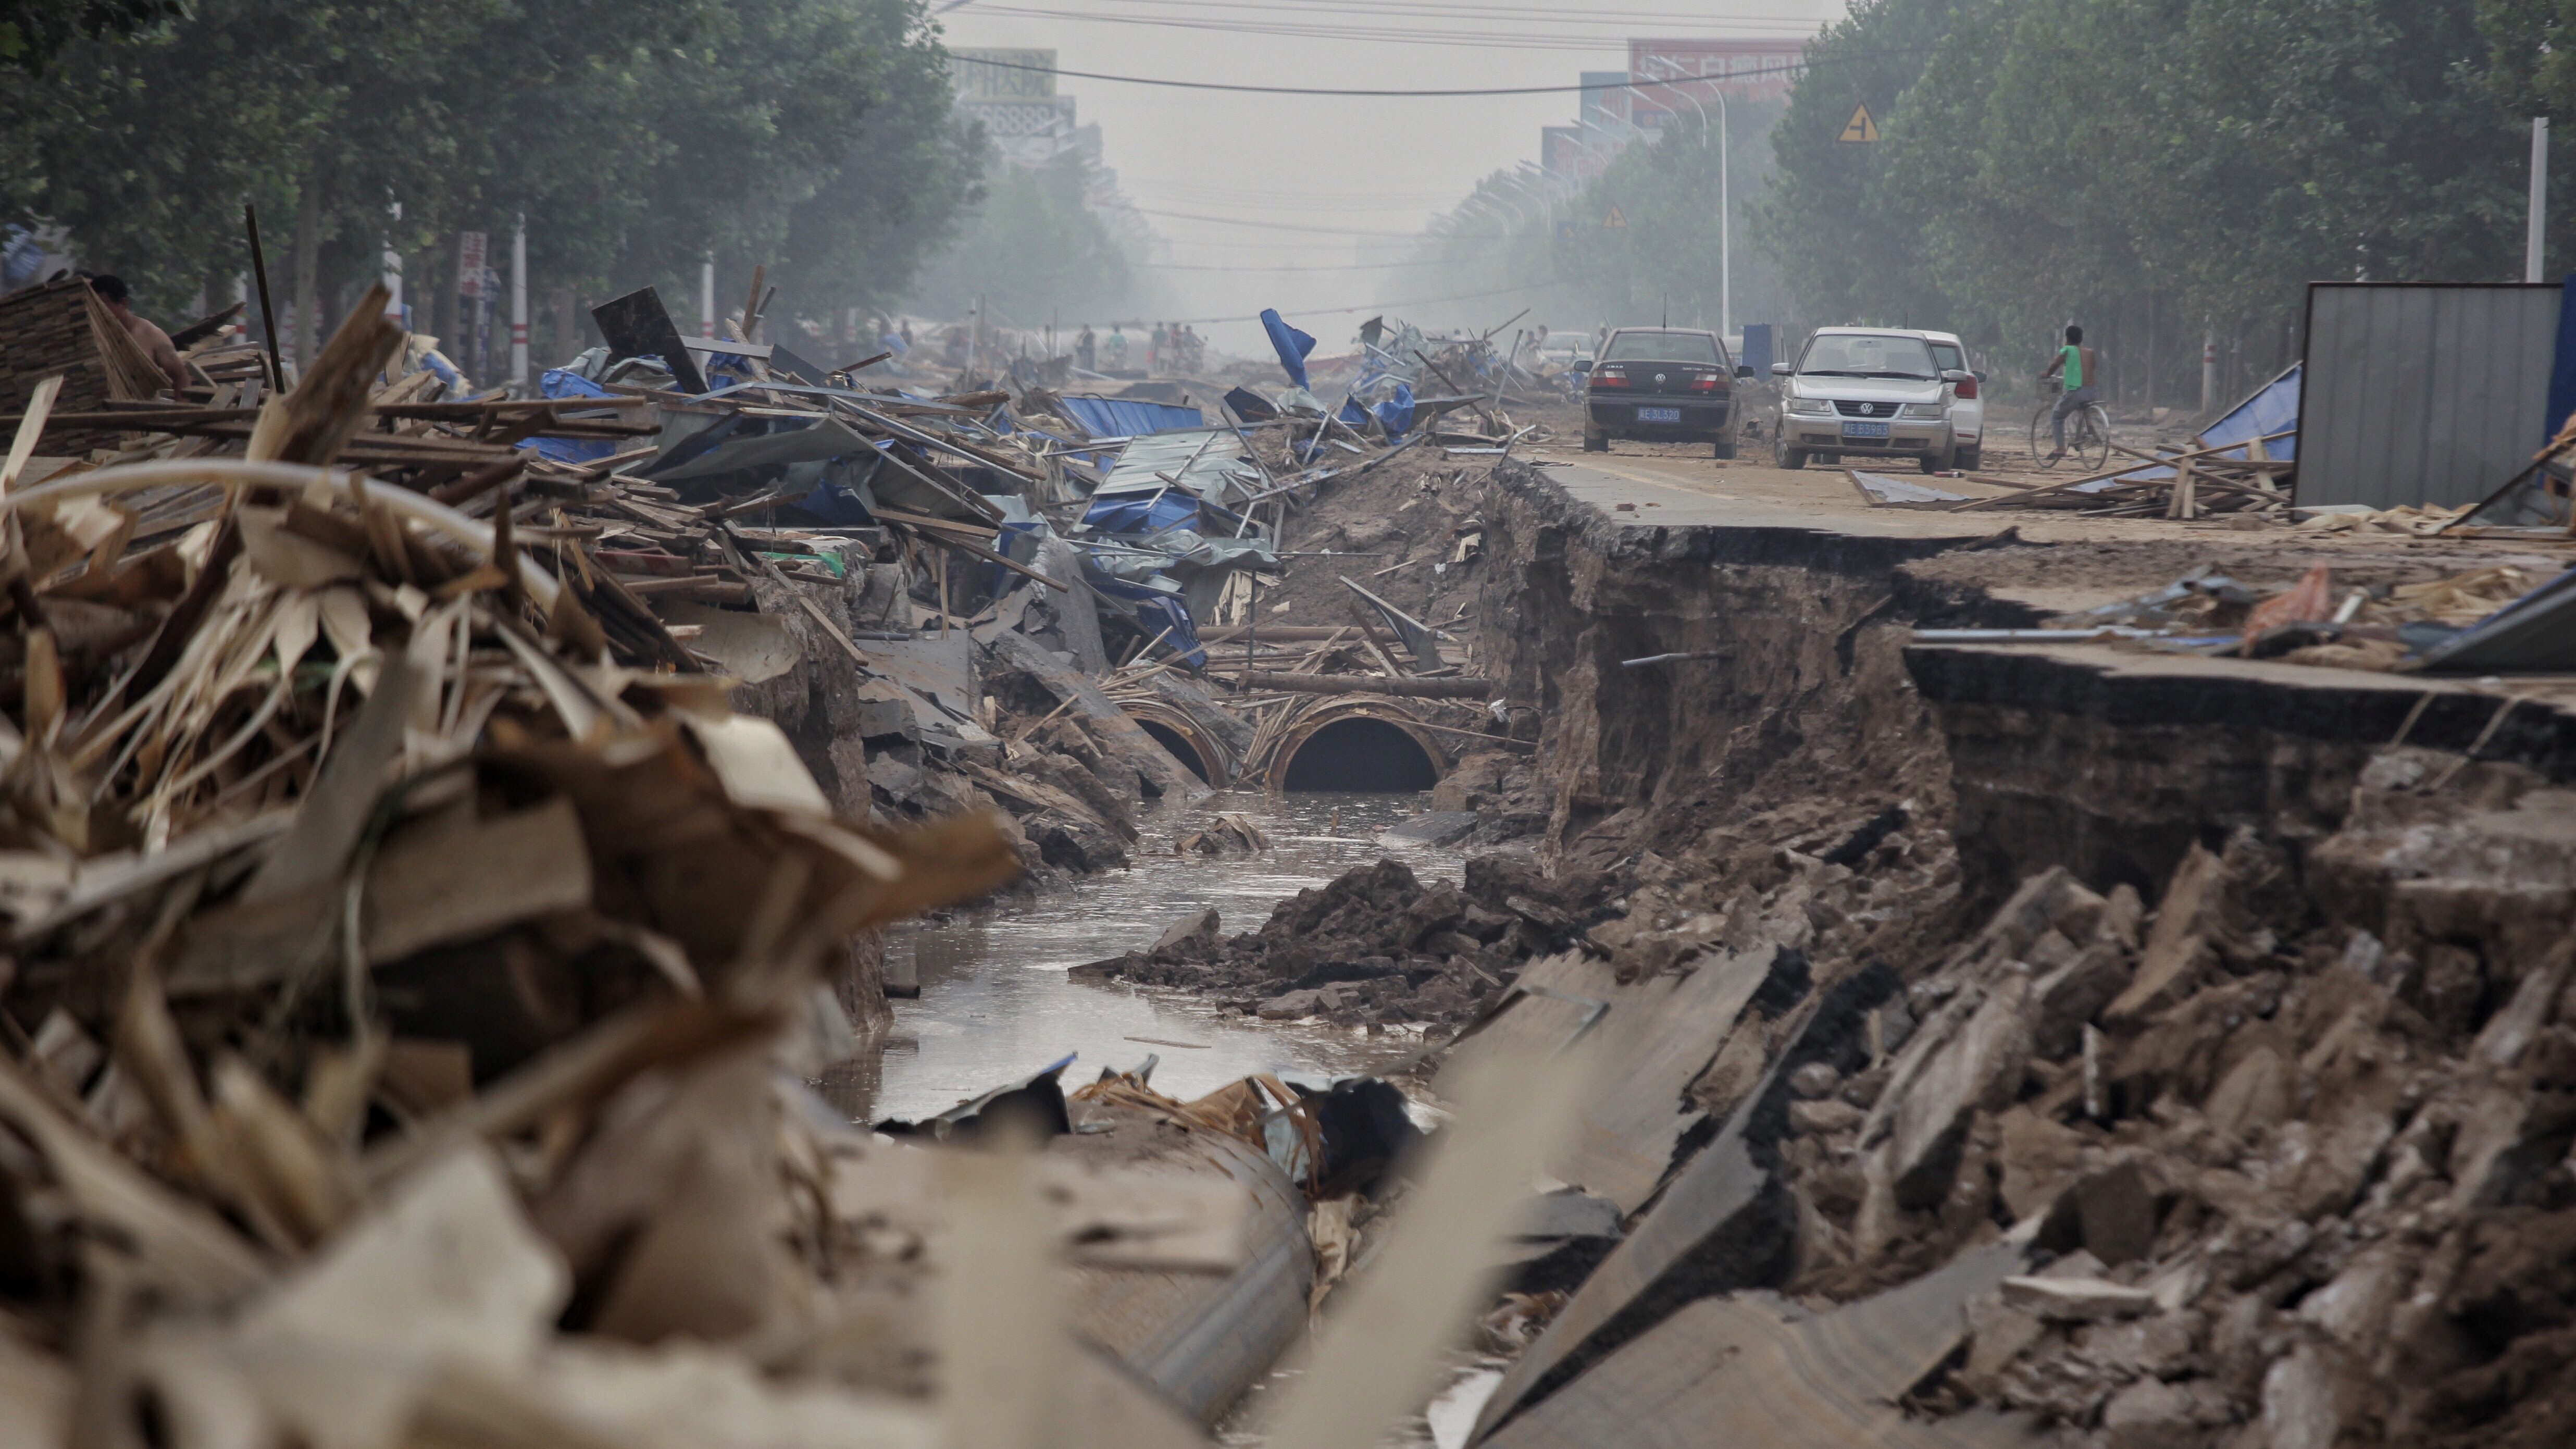 A road is seen damaged after floods in Xingtai